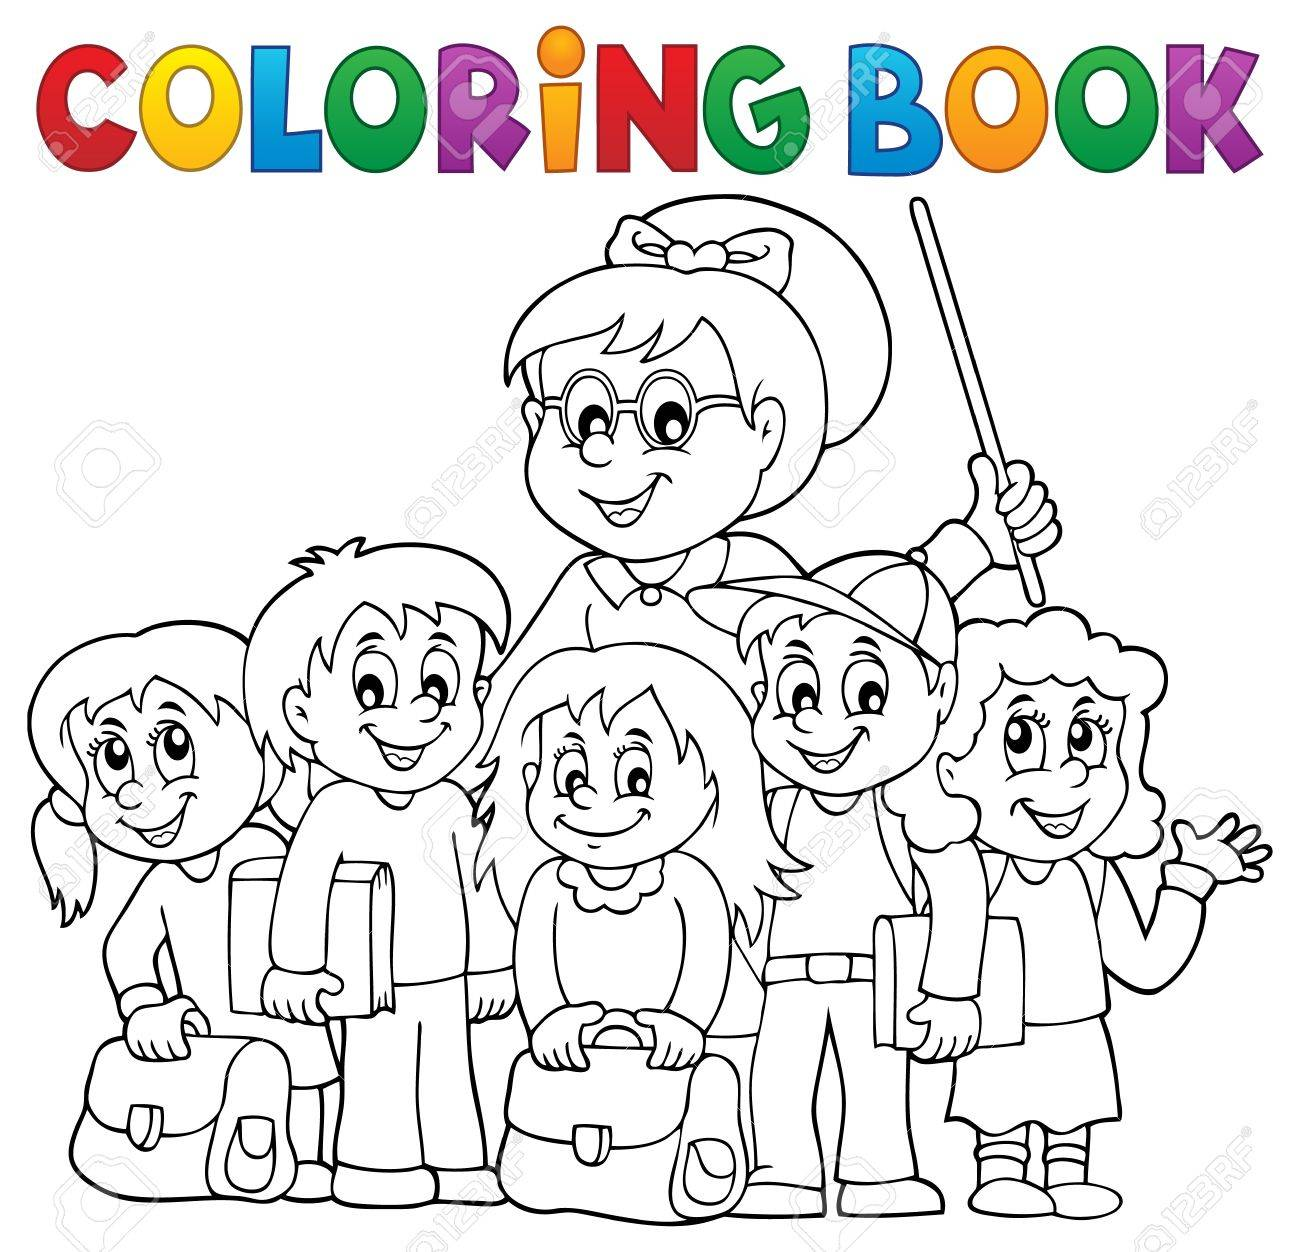 Coloring Book School Class Royalty Free Cliparts, Vectors, And